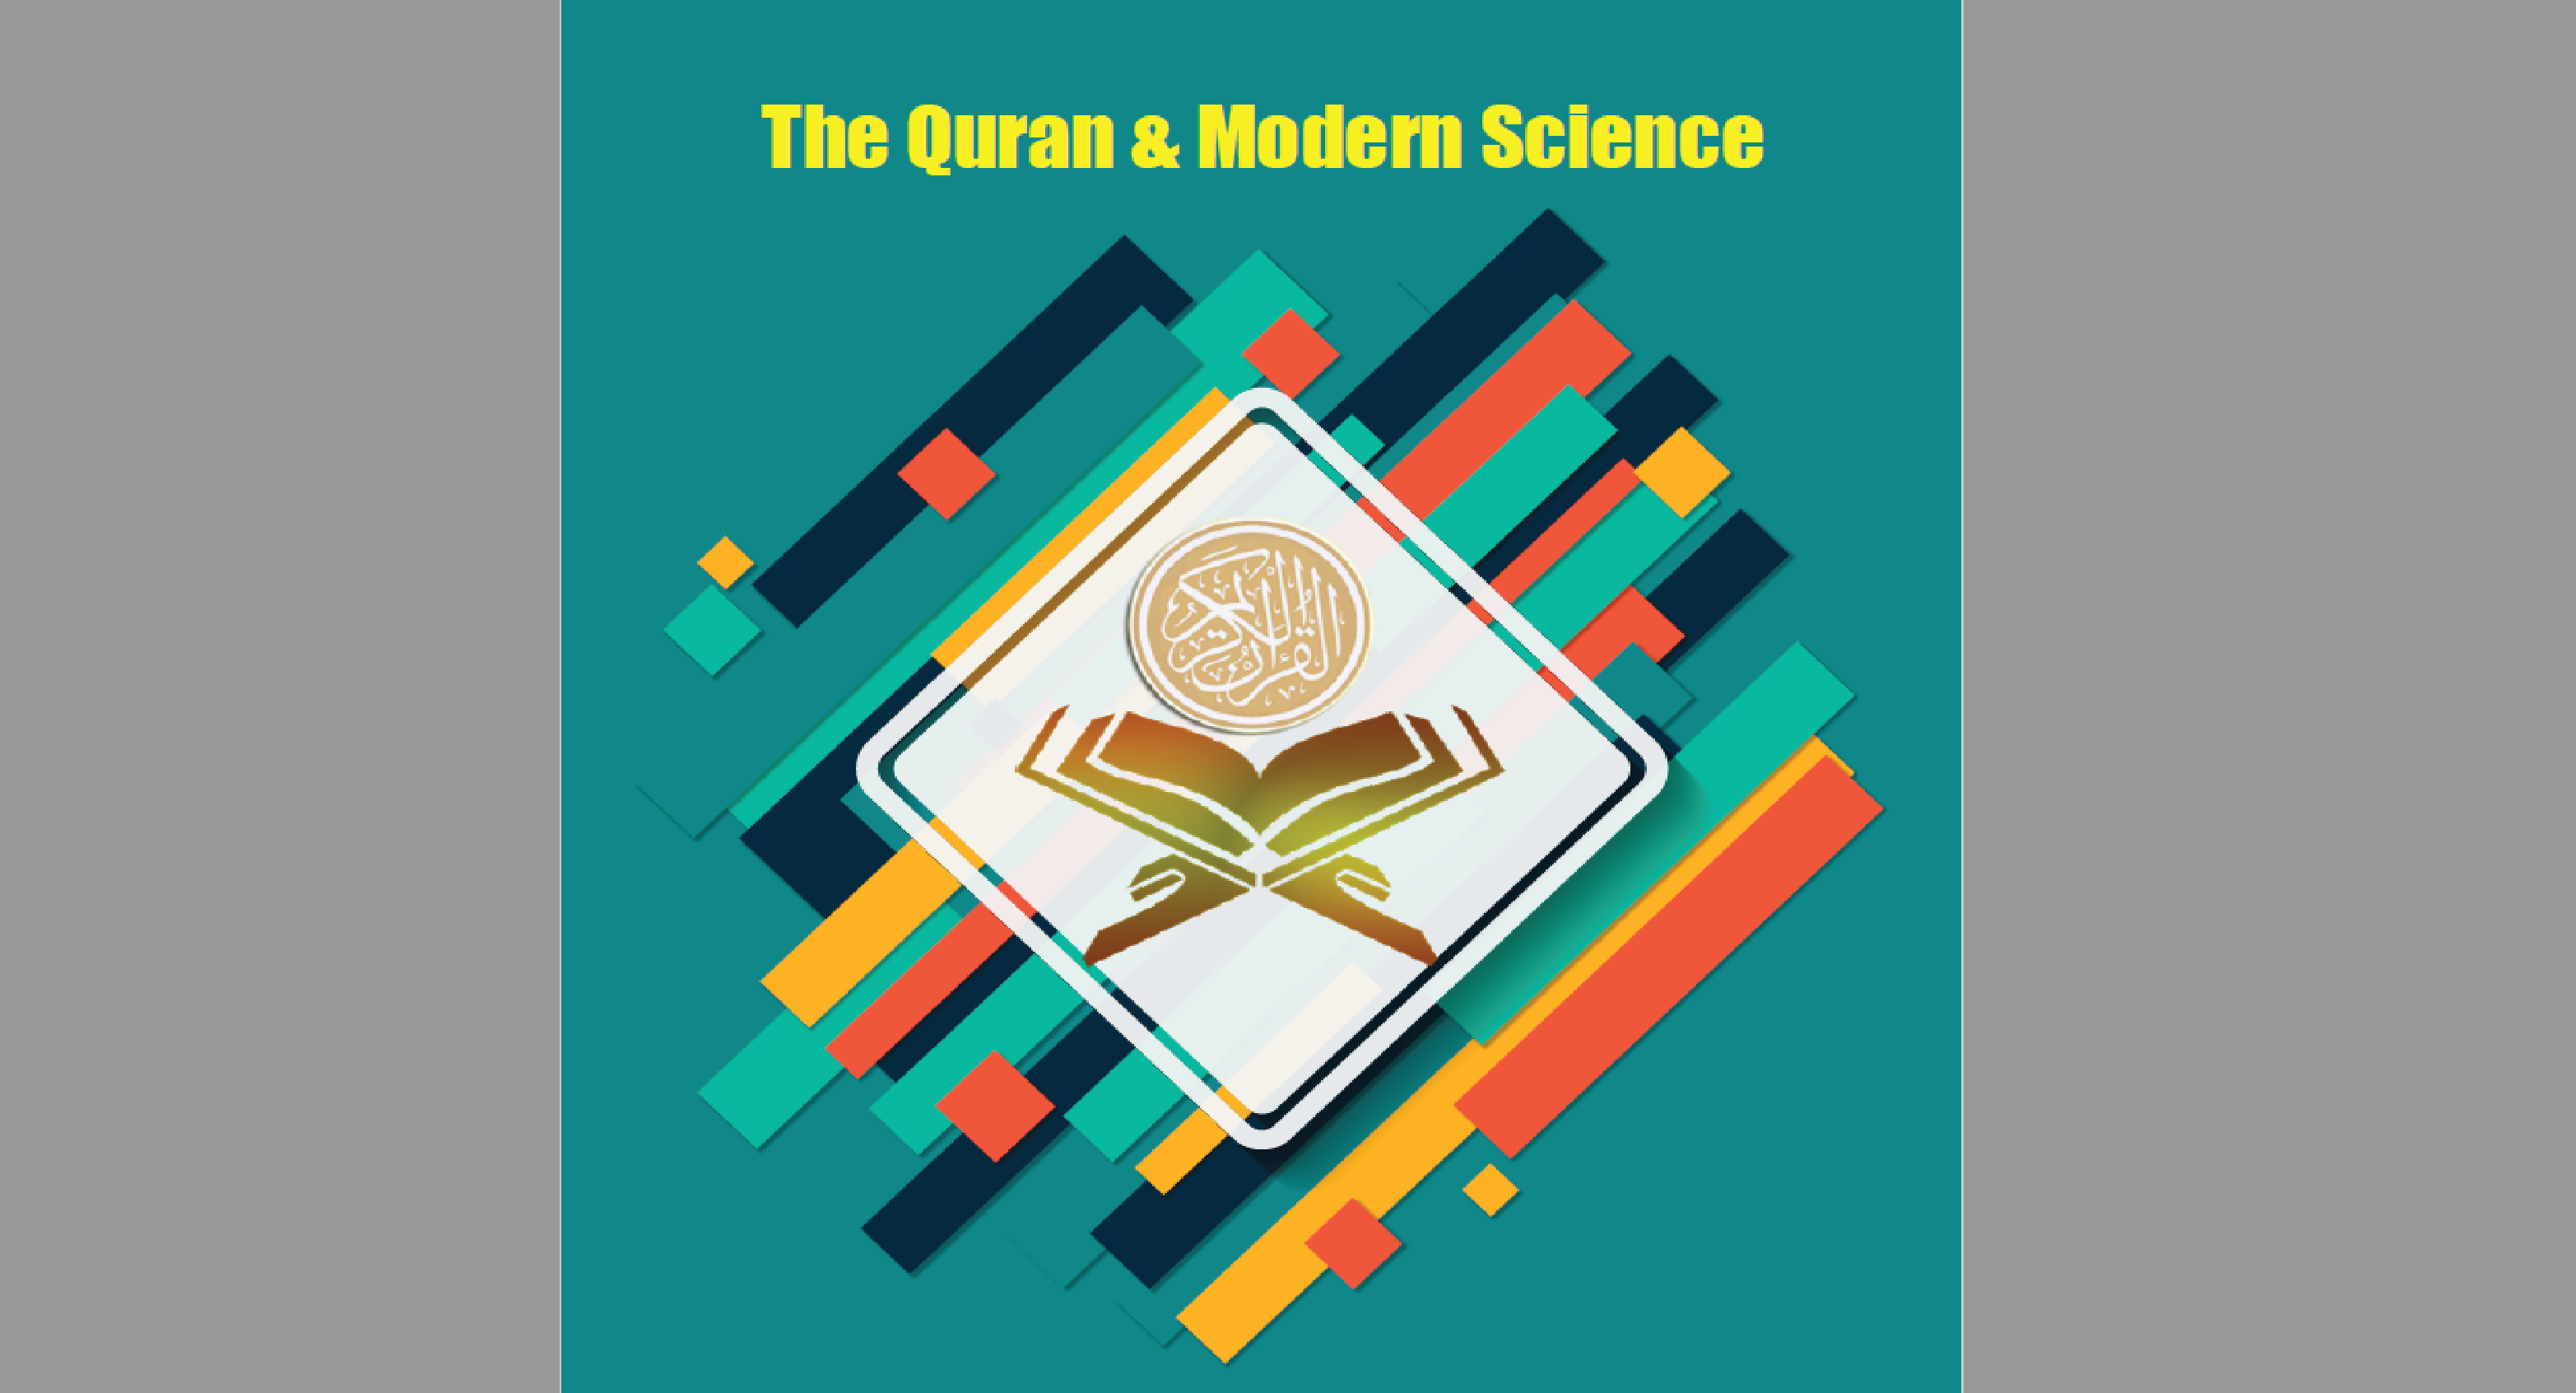 The Quran & Modern Science